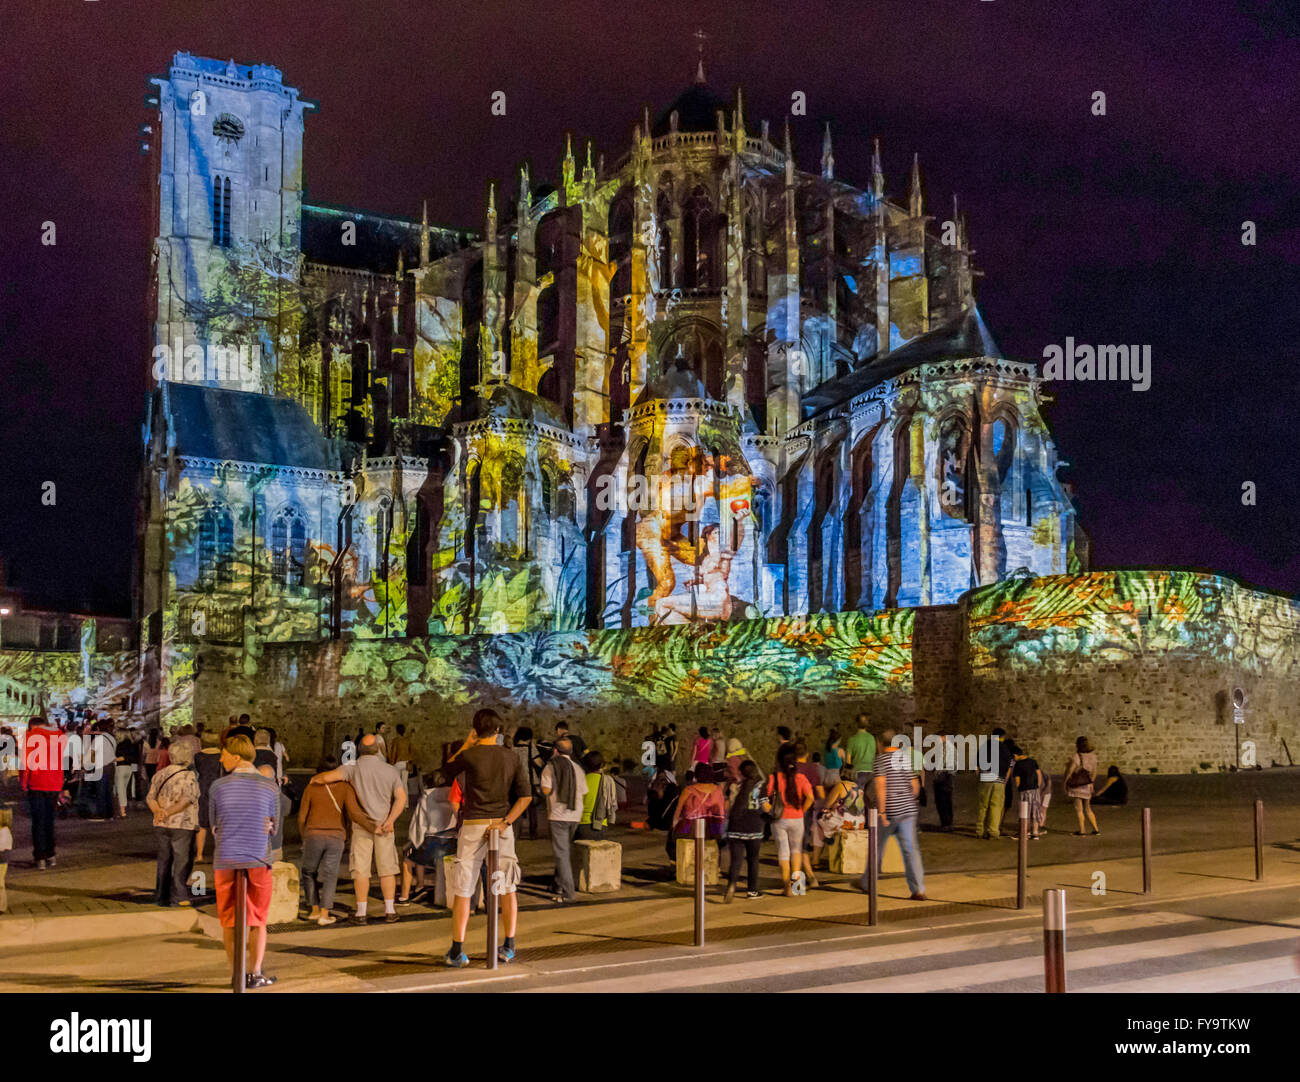 Light show on Cathedral of St Julien in Le Mans France, the Cathedral is situated in the old city of Le Mans. Stock Photo